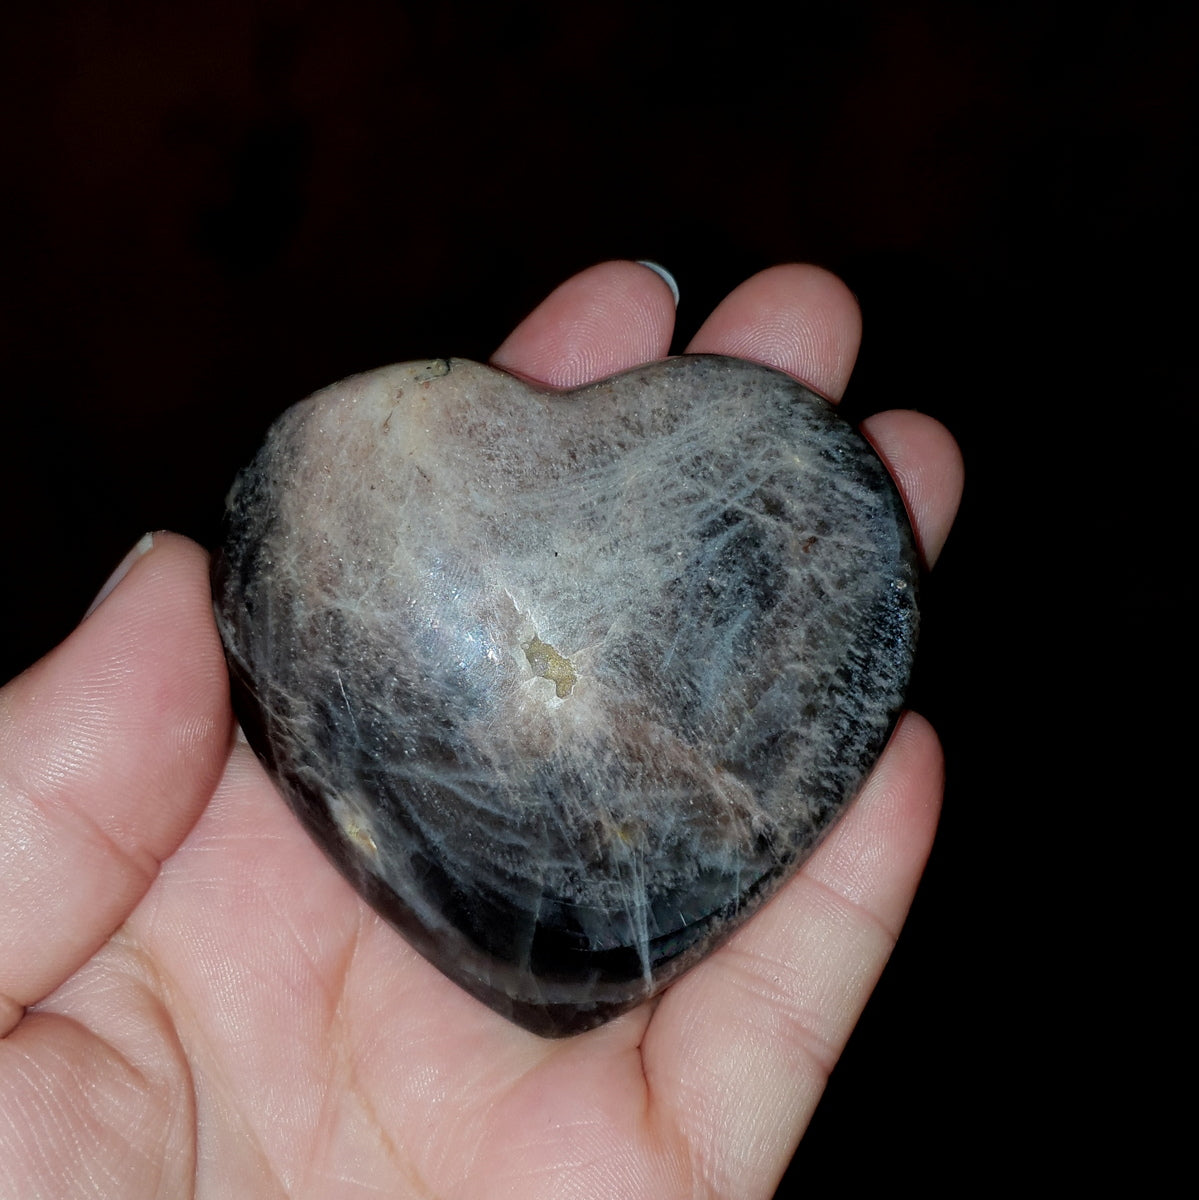 Black Moonstone Heart - Shop Now at Illiom Crystals - Afterpay Available